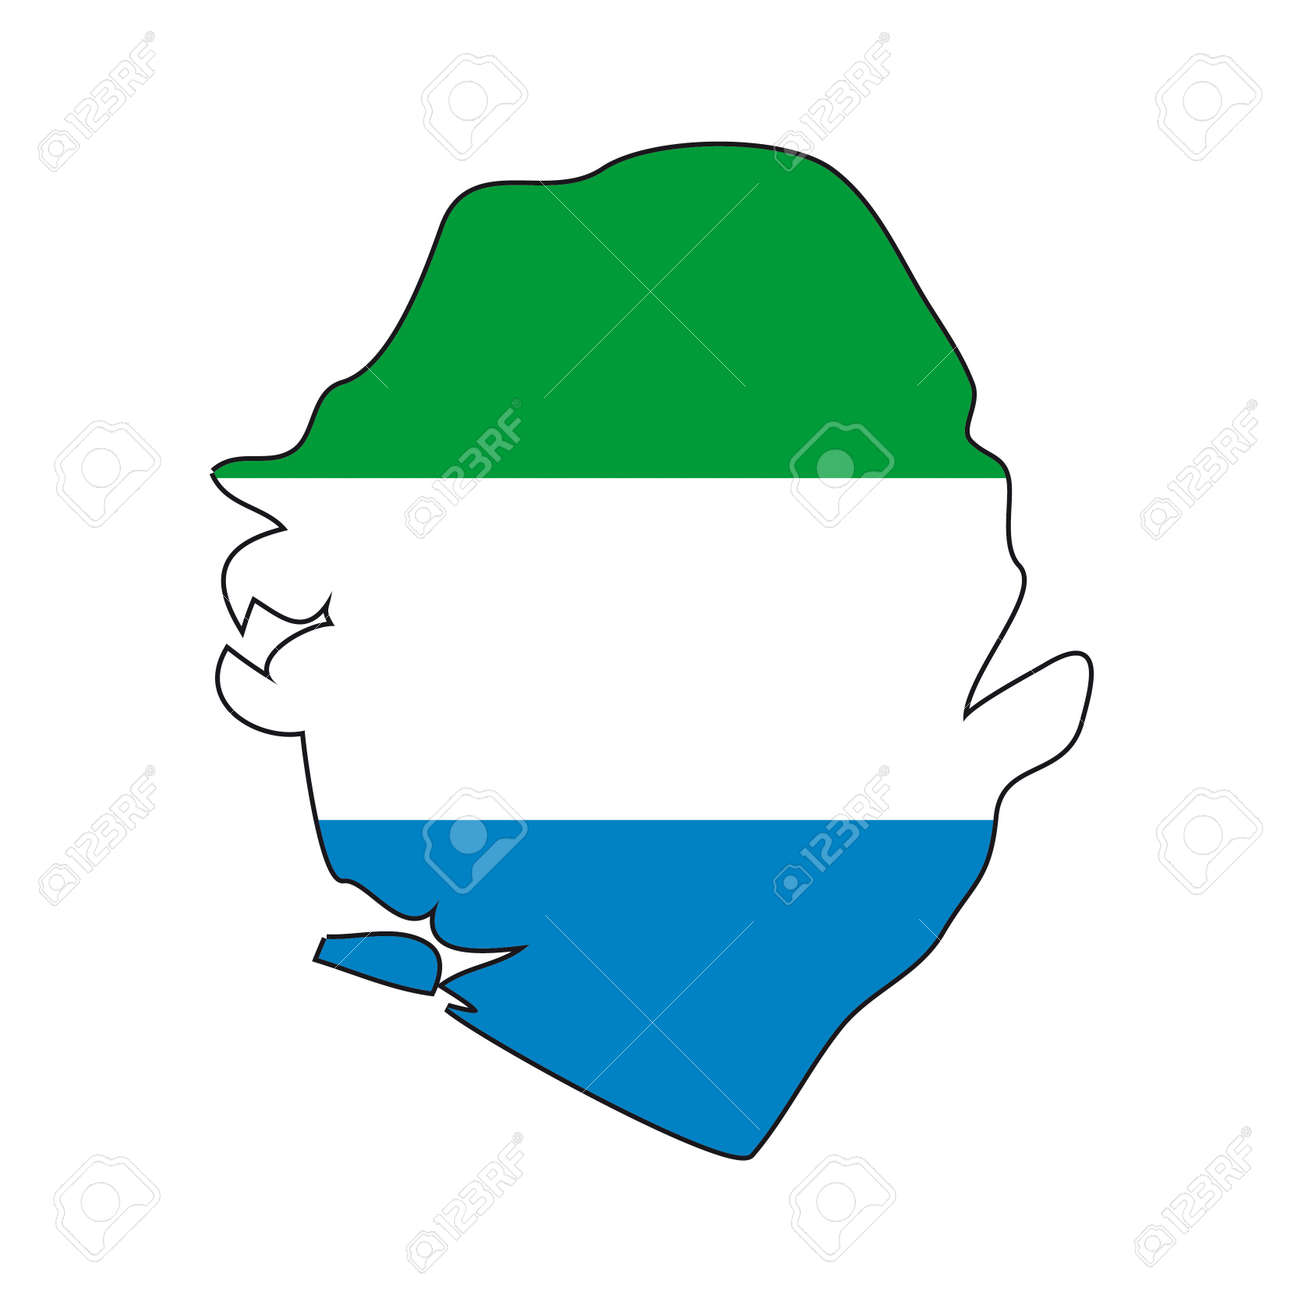 map flag Sierra Leone Stock Vector - 10648663